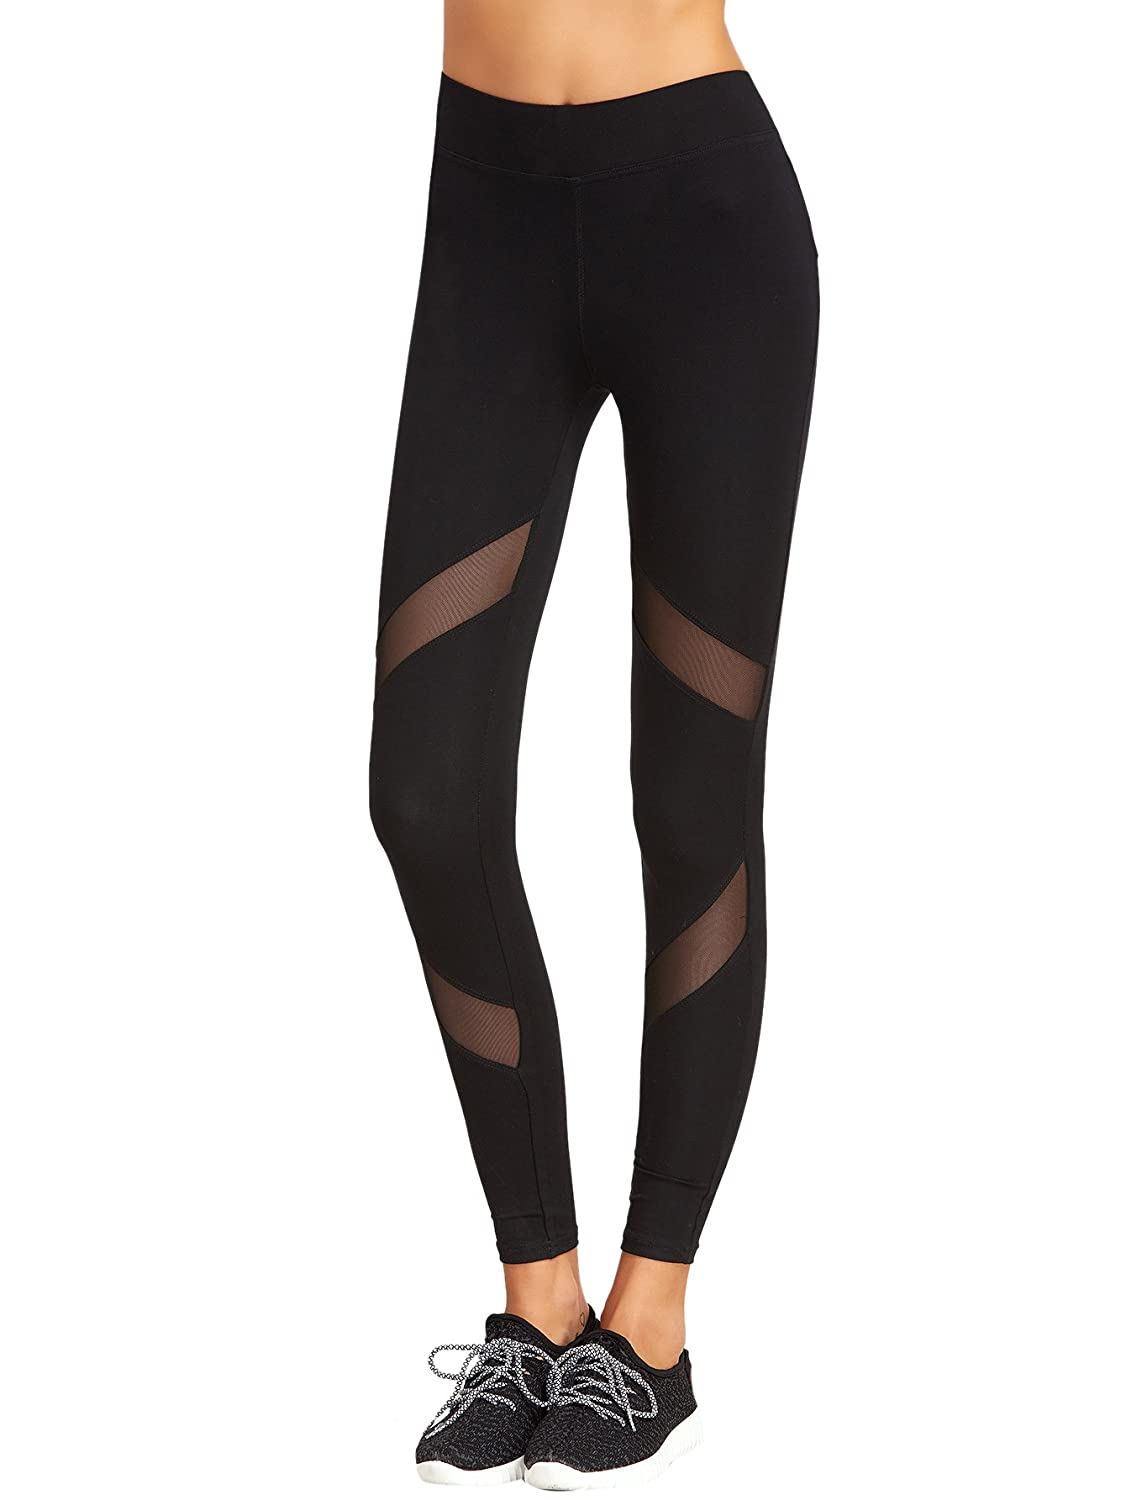 b1b582518ef6d1 Soft and Comfy fabric, Stretchy Pants Mesh and Color Block, Casual Sports  Legging Tights Good for Indoor and Outdoor Actives like Gym, Workout,  Running, ...